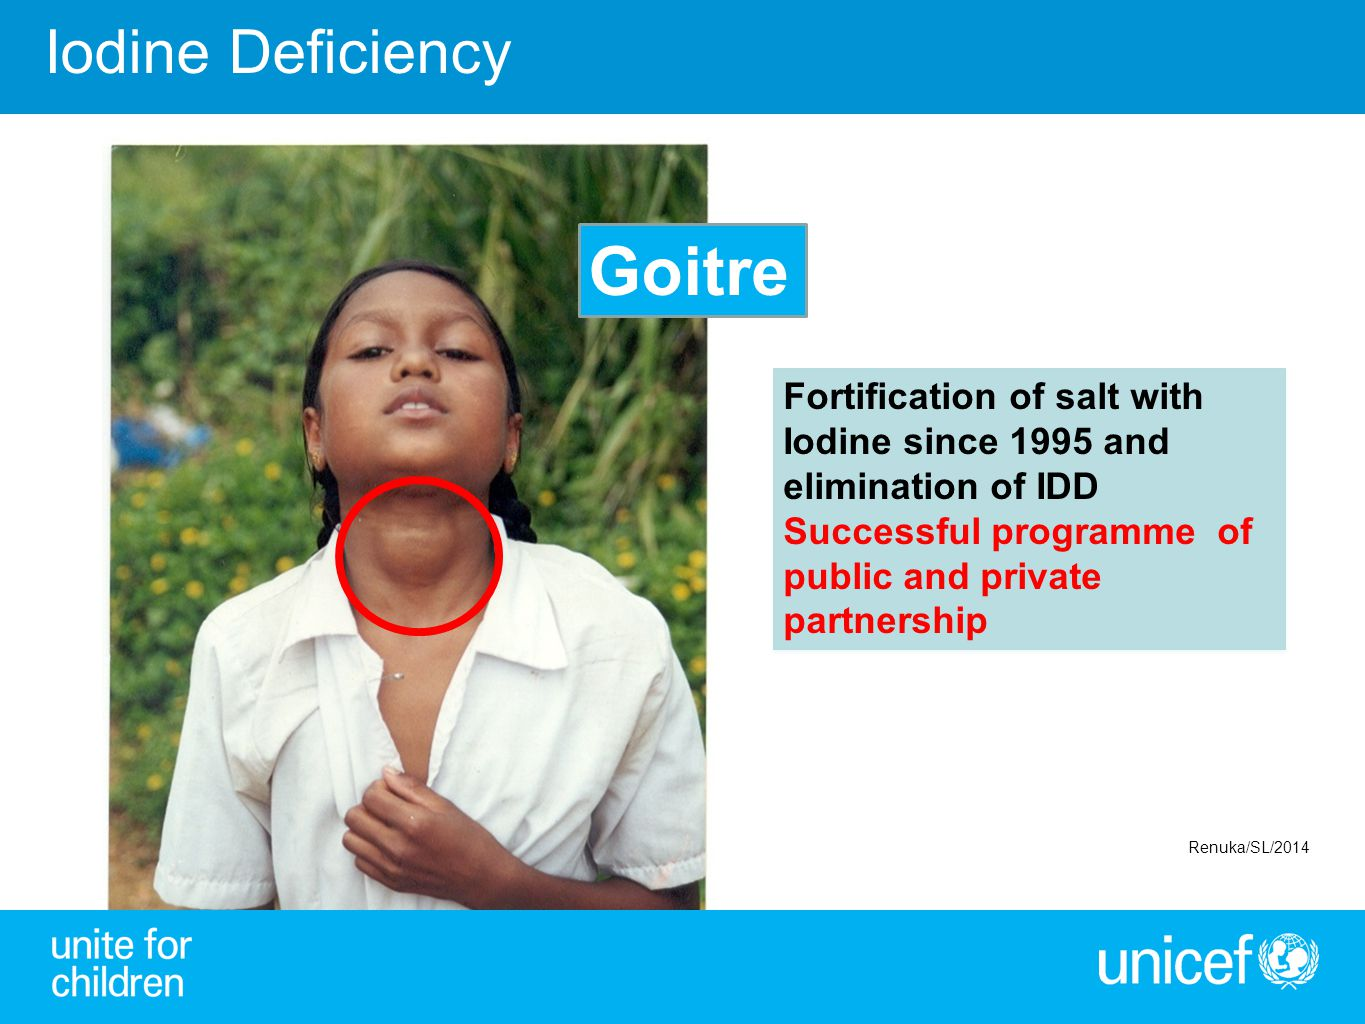 Goitre Iodine Deficiency Fortification of salt with